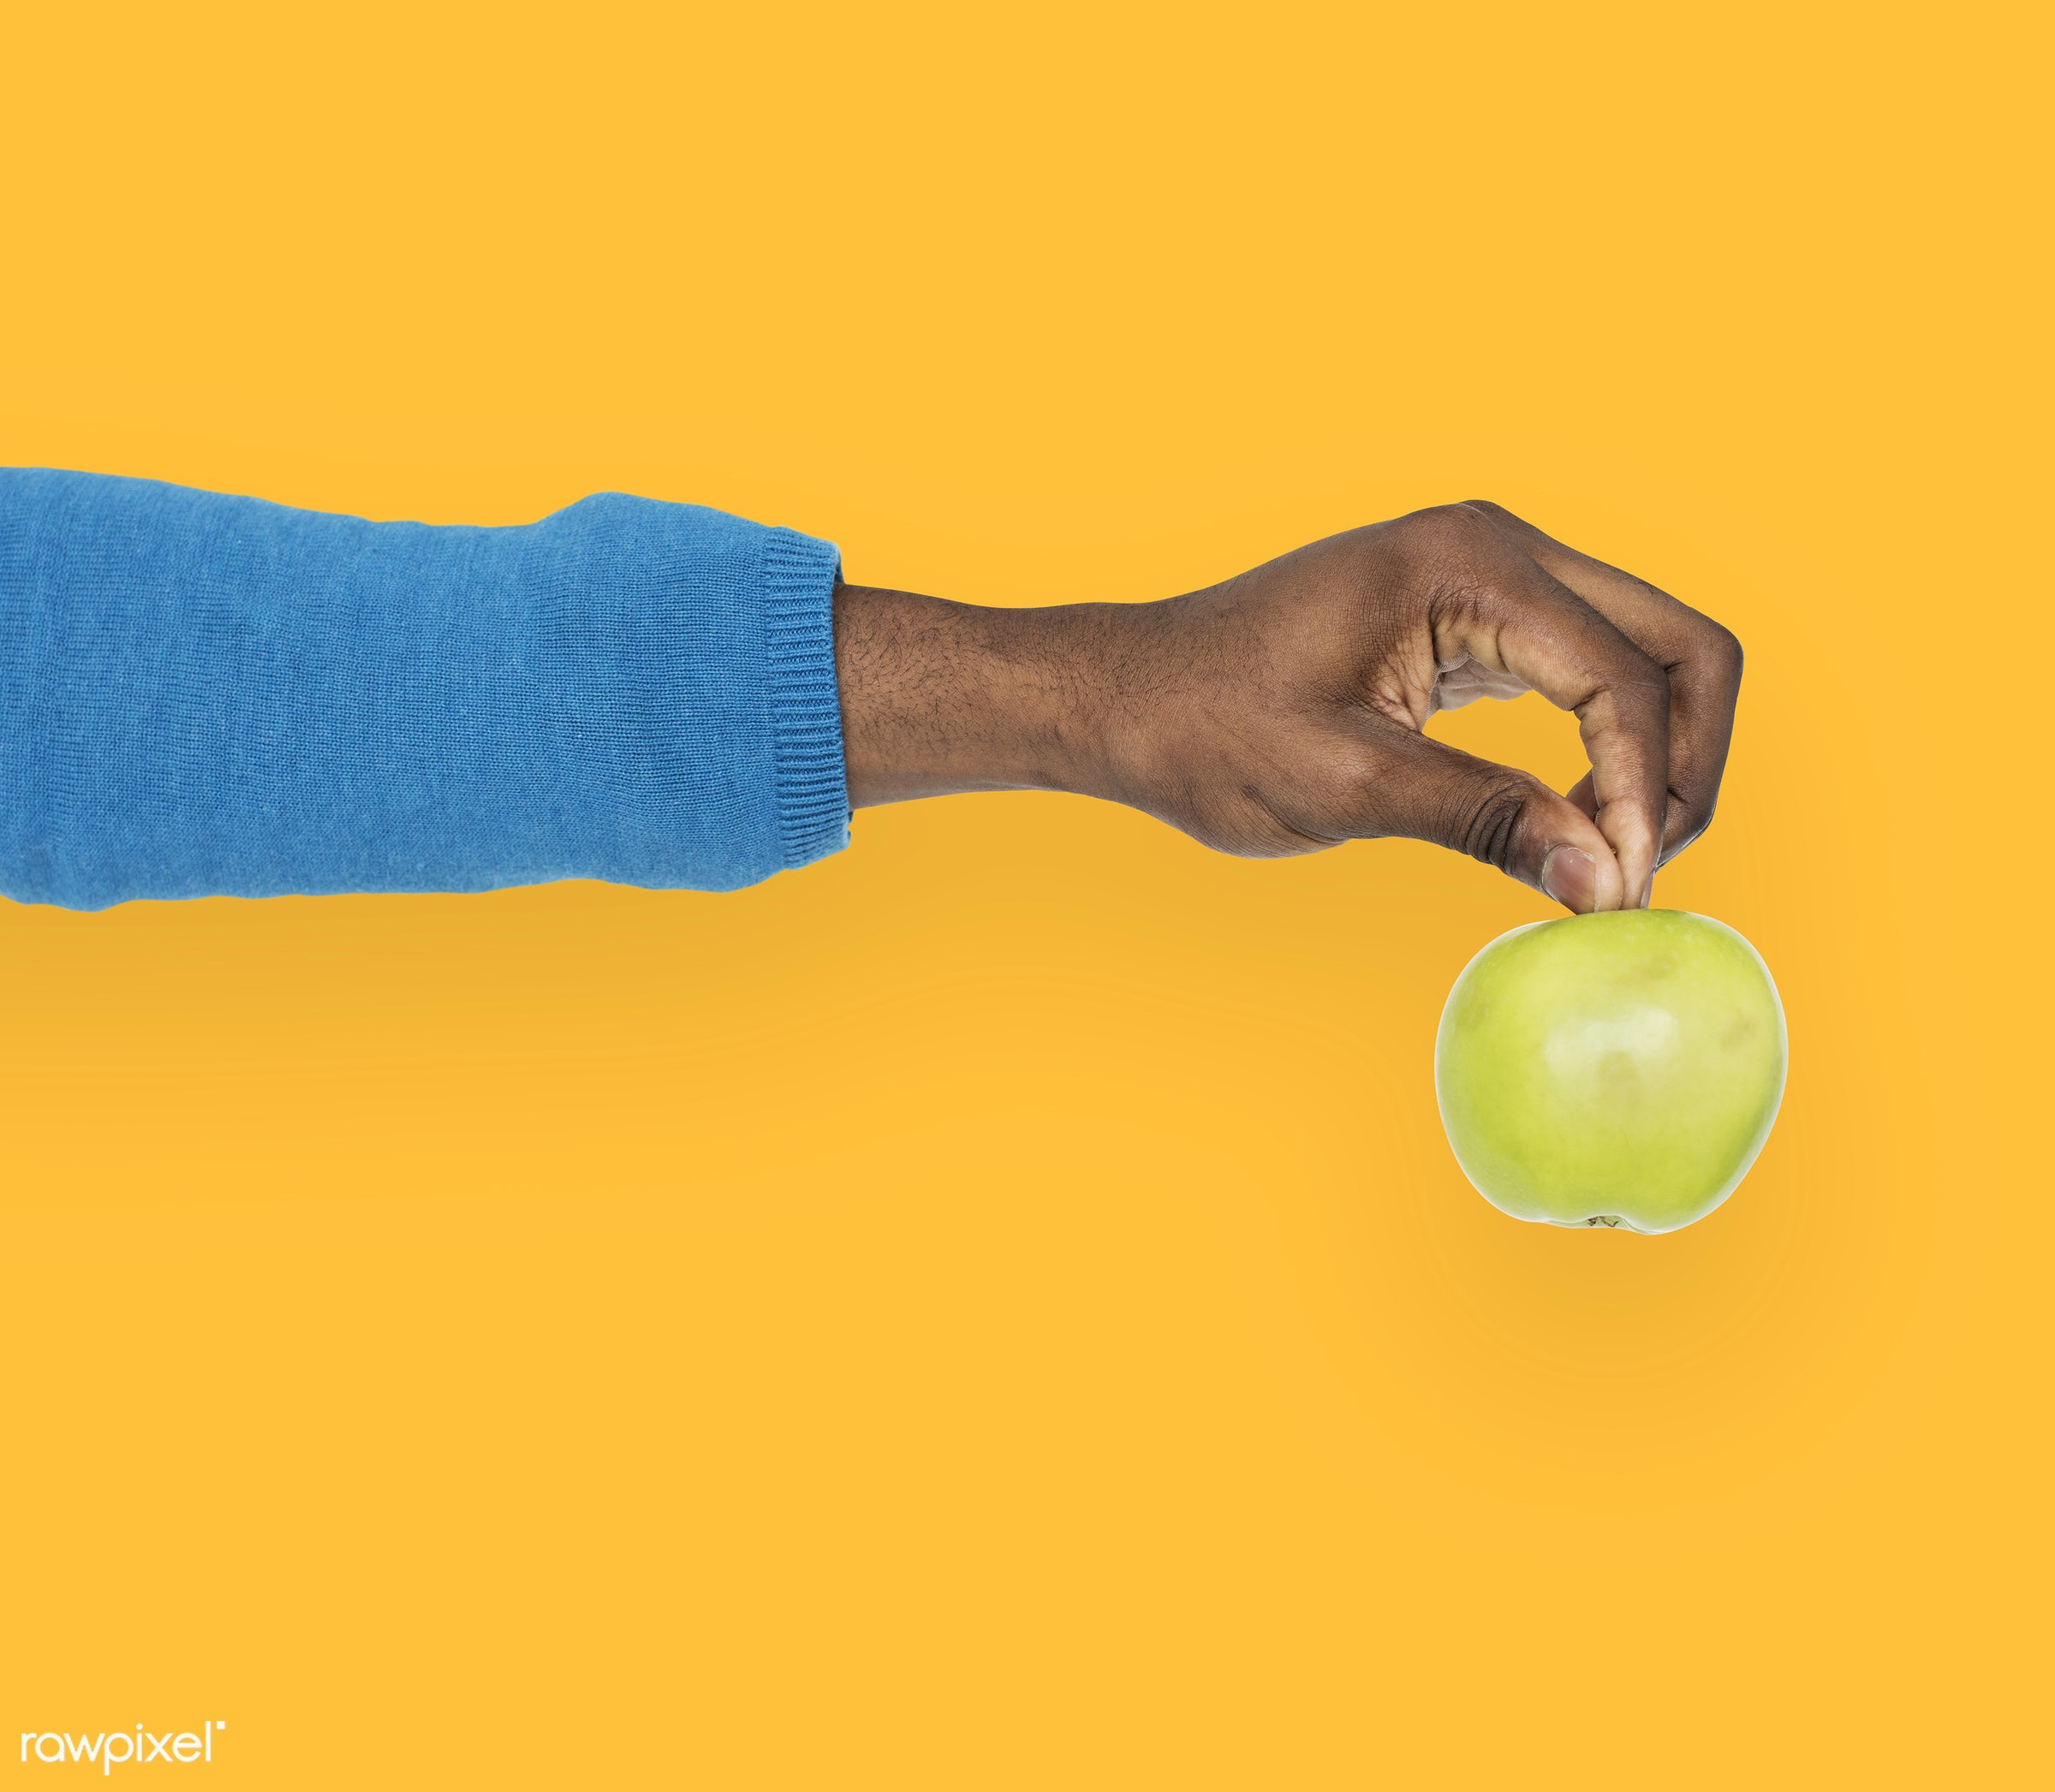 person, diet, yellow, race, hand, nature, wellness, lifestyle, showing, isolated, fruit, african descent, gesture, human,...